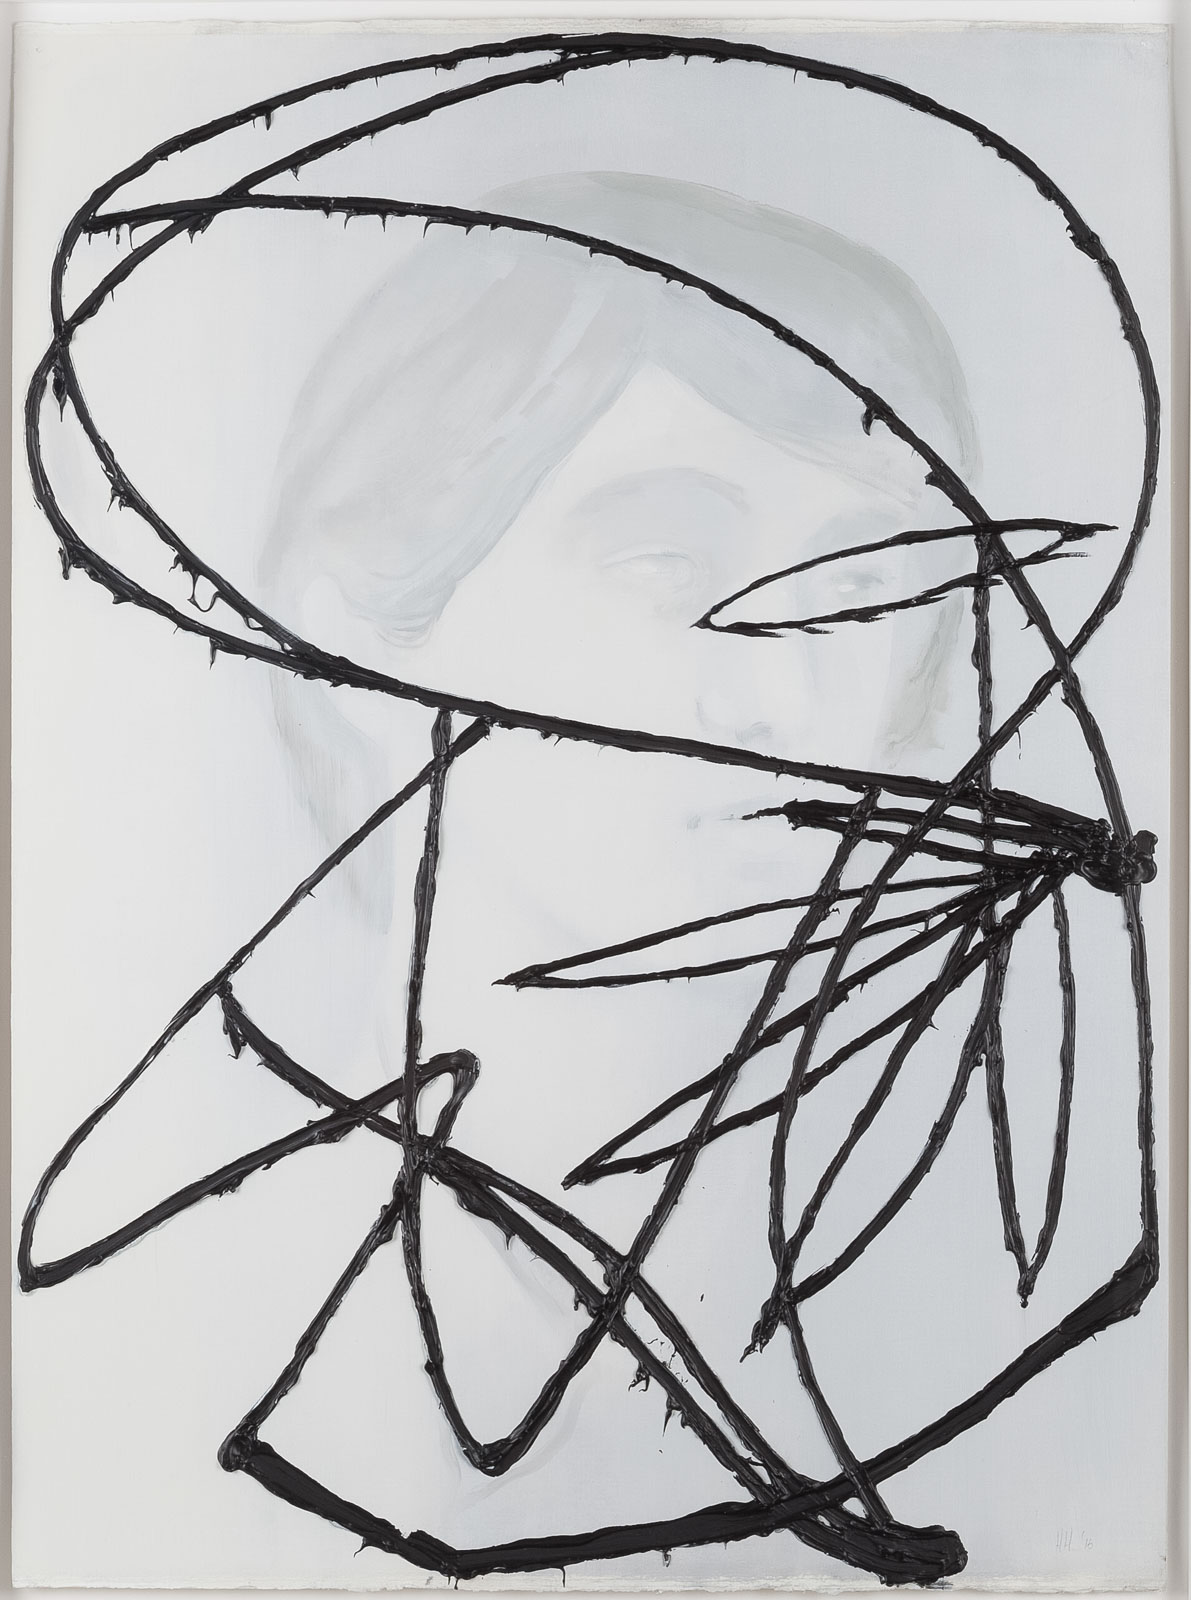 Håvard Homstvedt, The Continental Cloth #6, 2016, Oil on paper, 76 x 56,5 cm